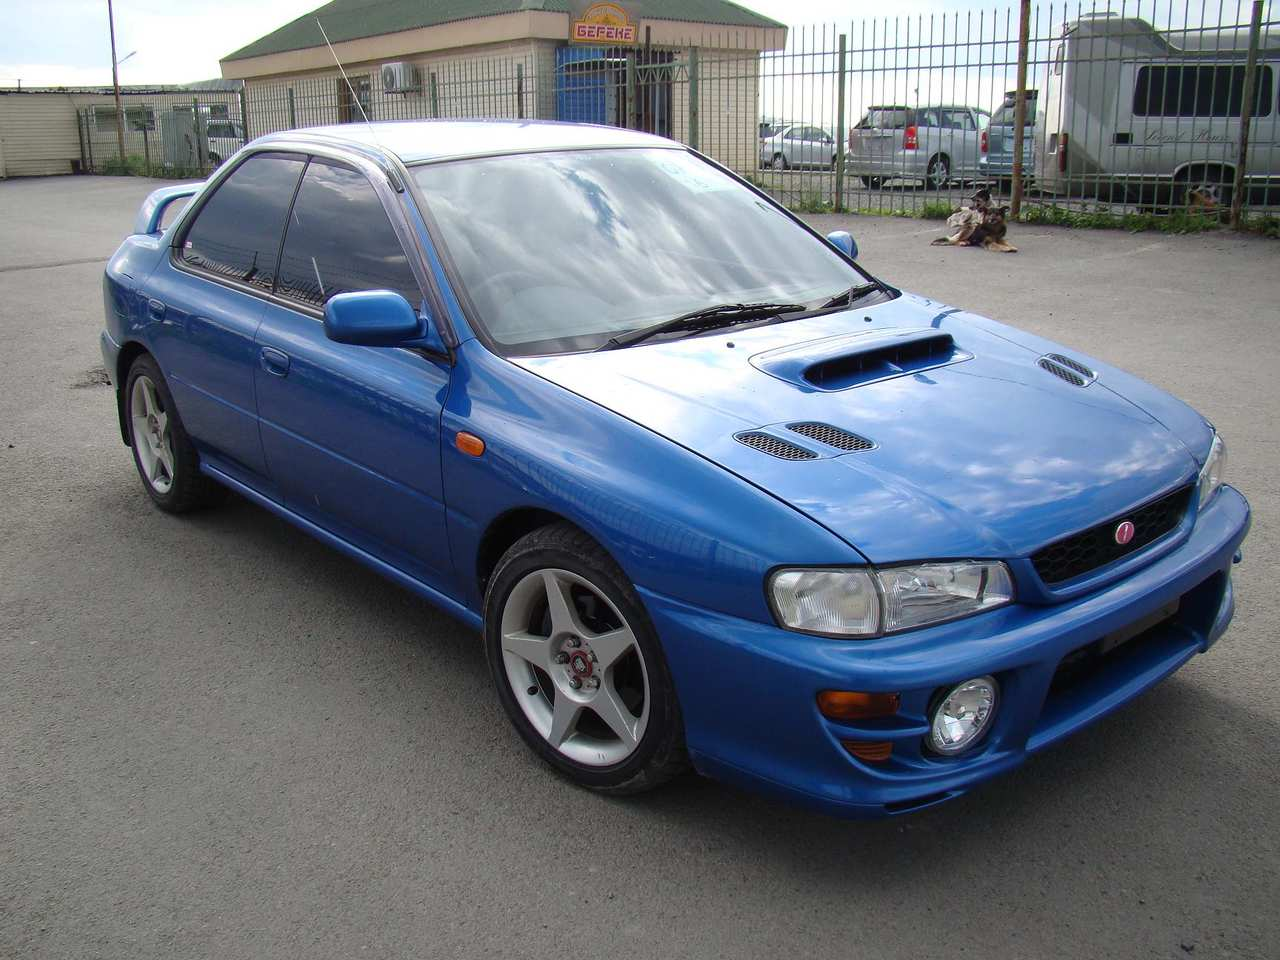 1999 subaru impreza wrx sti pictures 2000cc gasoline. Black Bedroom Furniture Sets. Home Design Ideas